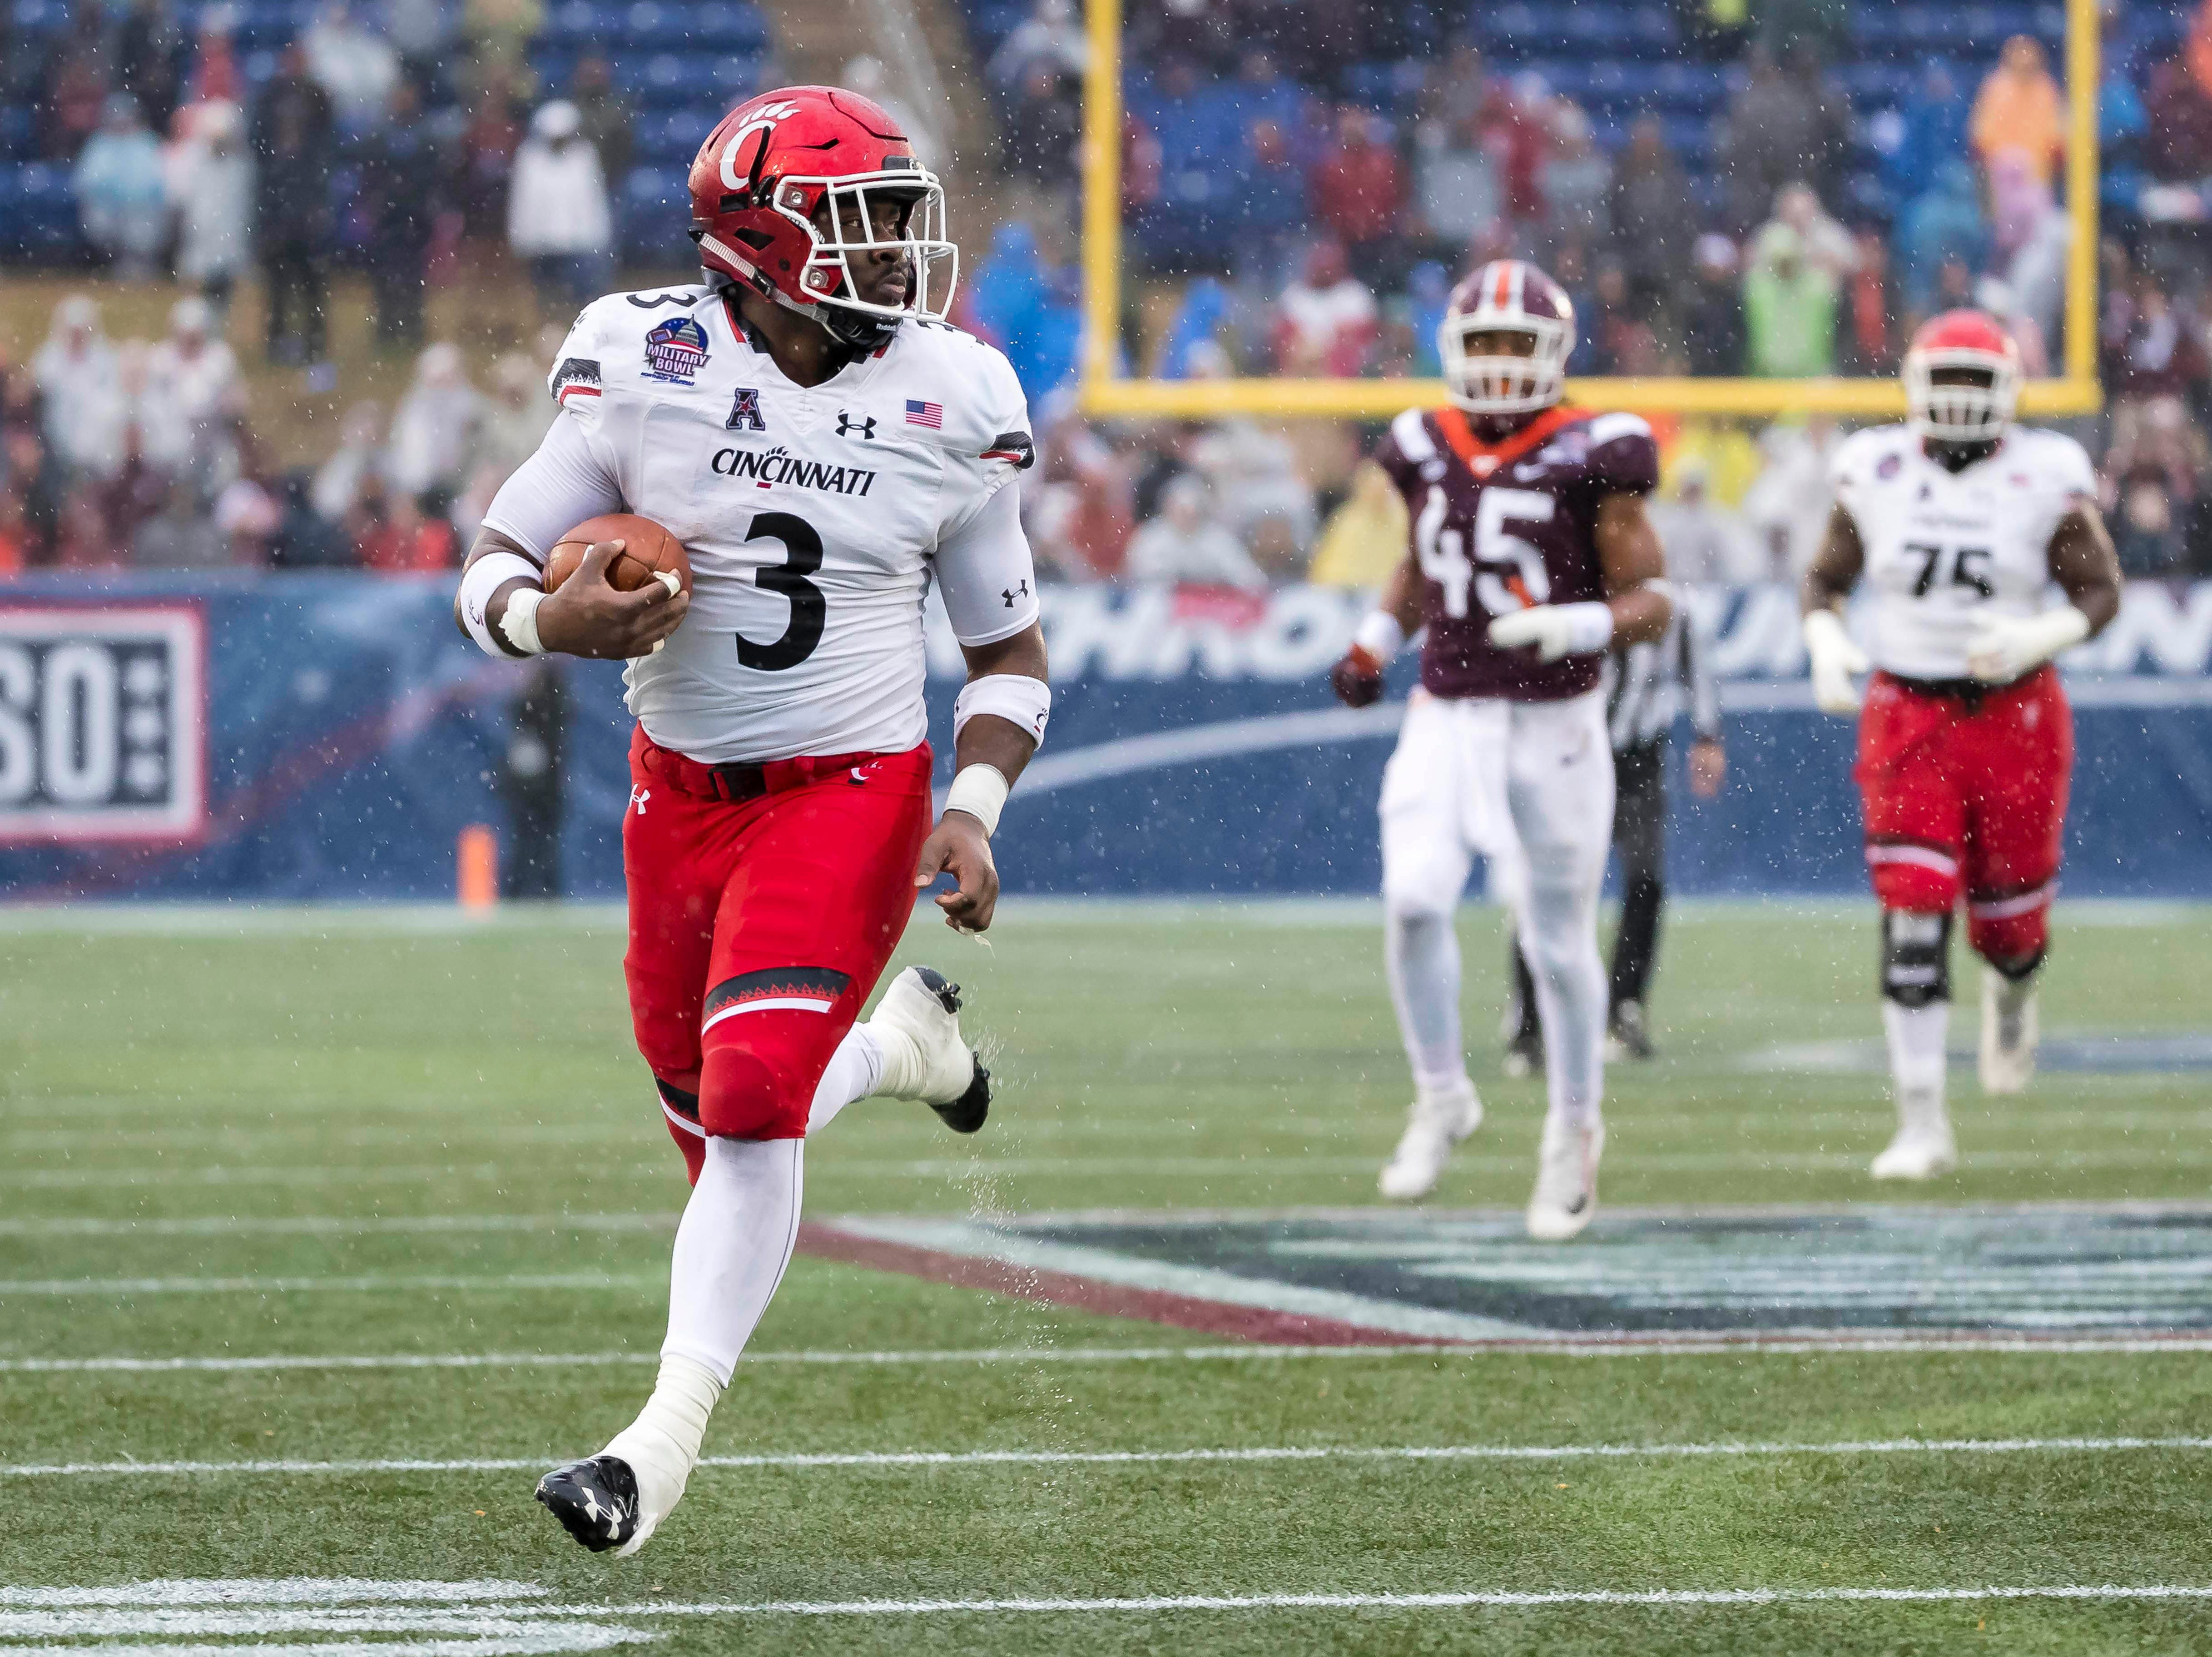 Cincinnati running back Michael Warren II breaks free for a touchdown against Virginia Tech during the second half of the 2018 Military Bowl.